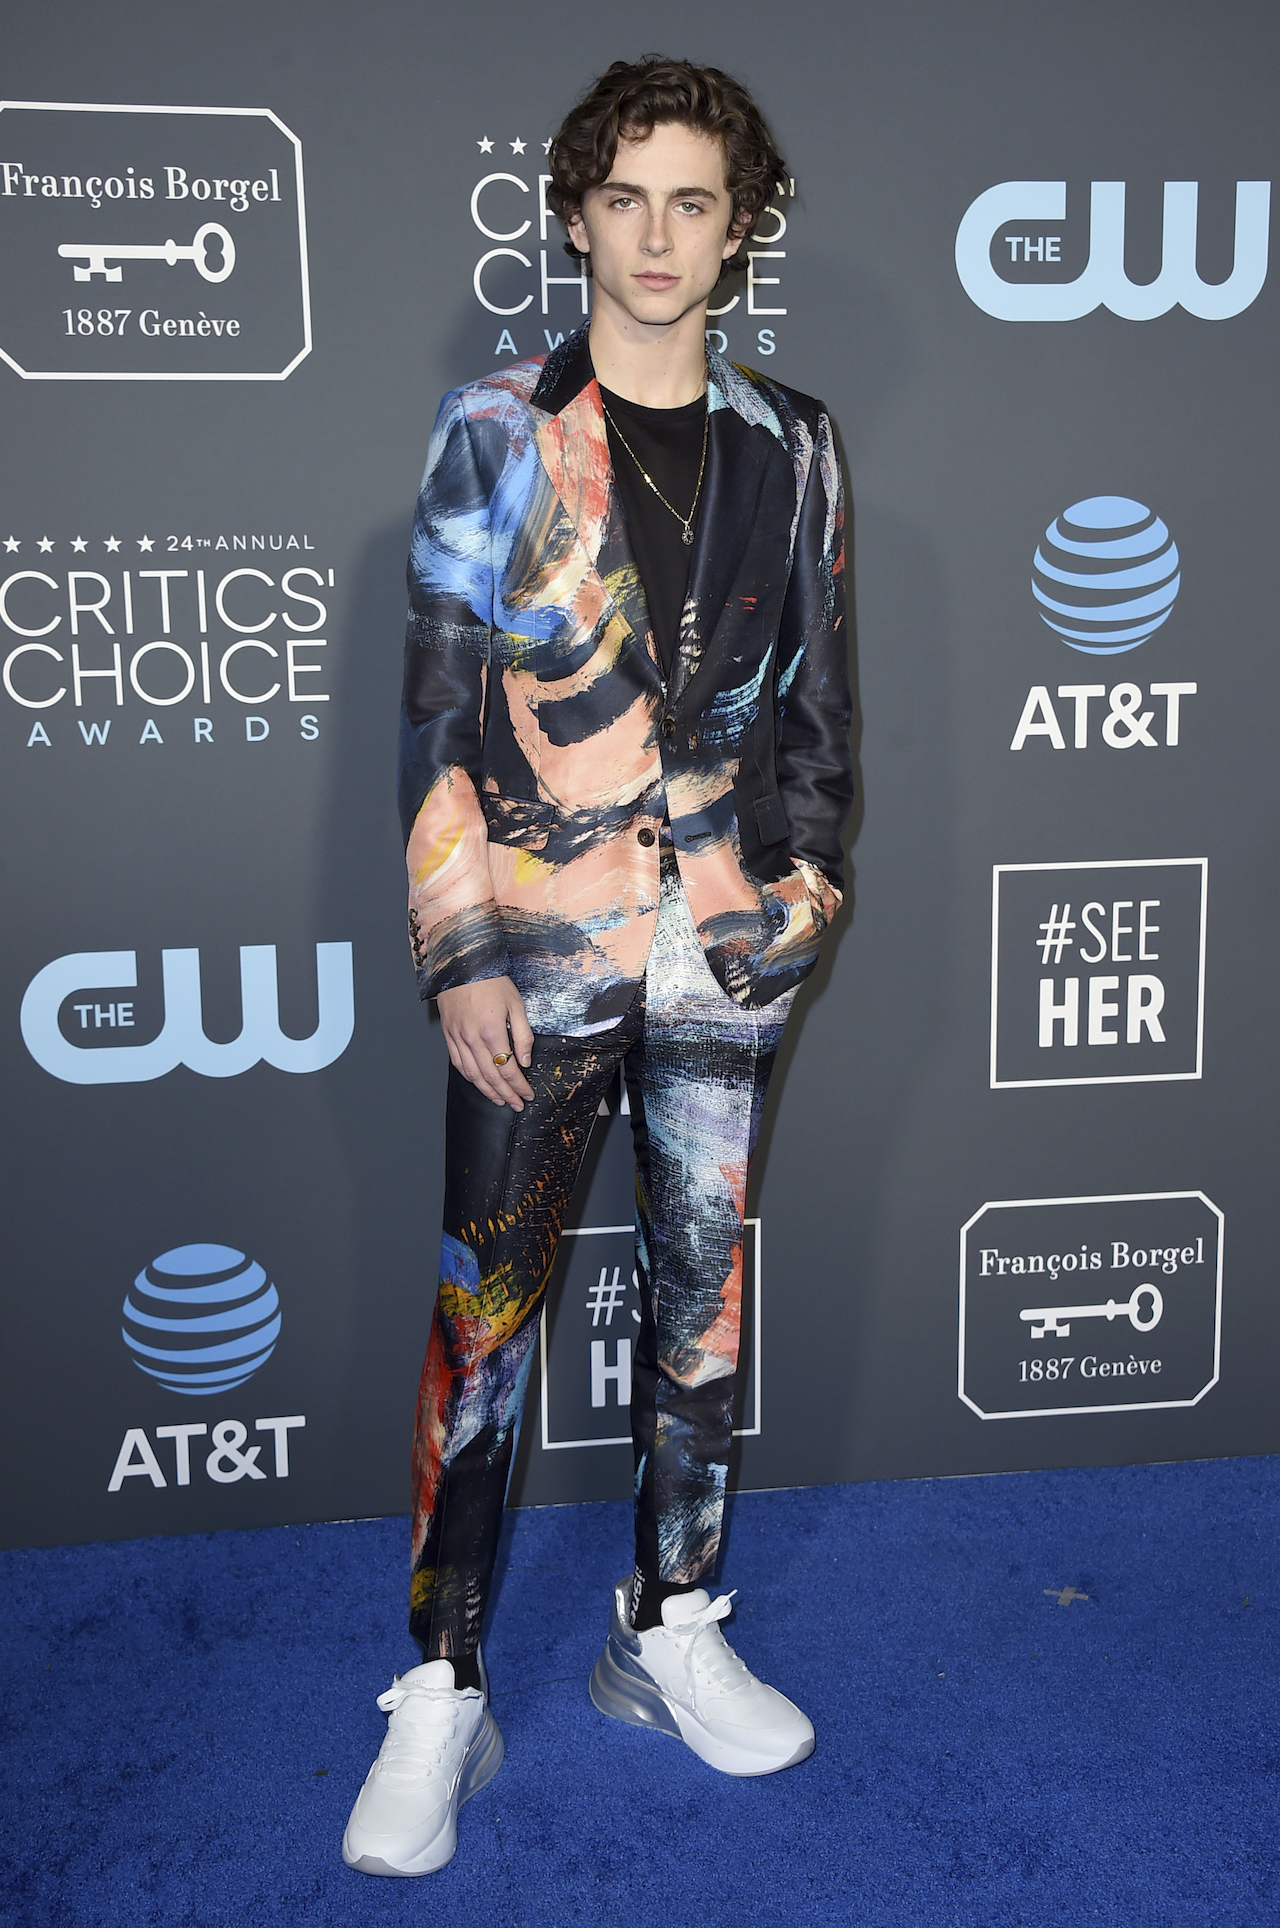 "<div class=""meta image-caption""><div class=""origin-logo origin-image ap""><span>AP</span></div><span class=""caption-text"">Timothee Chalamet arrives at the 24th annual Critics' Choice Awards on Sunday, Jan. 13, 2019, at the Barker Hangar in Santa Monica, Calif. (Jordan Strauss/Invision/AP)</span></div>"